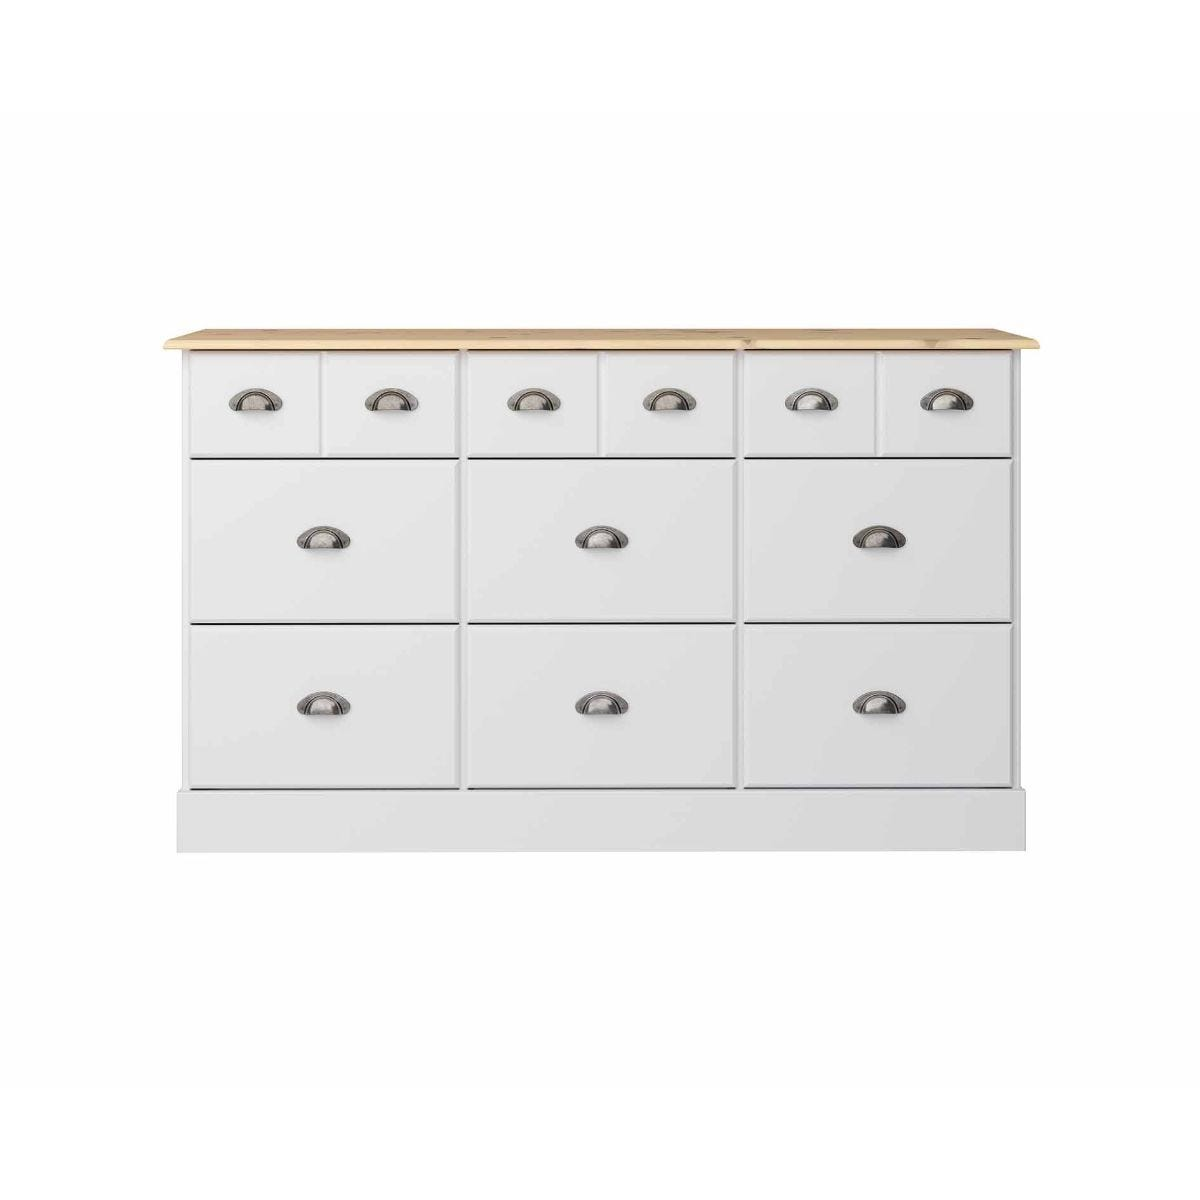 Steens Nola 6 Over 6 Extra Wide Chest of Drawers, White